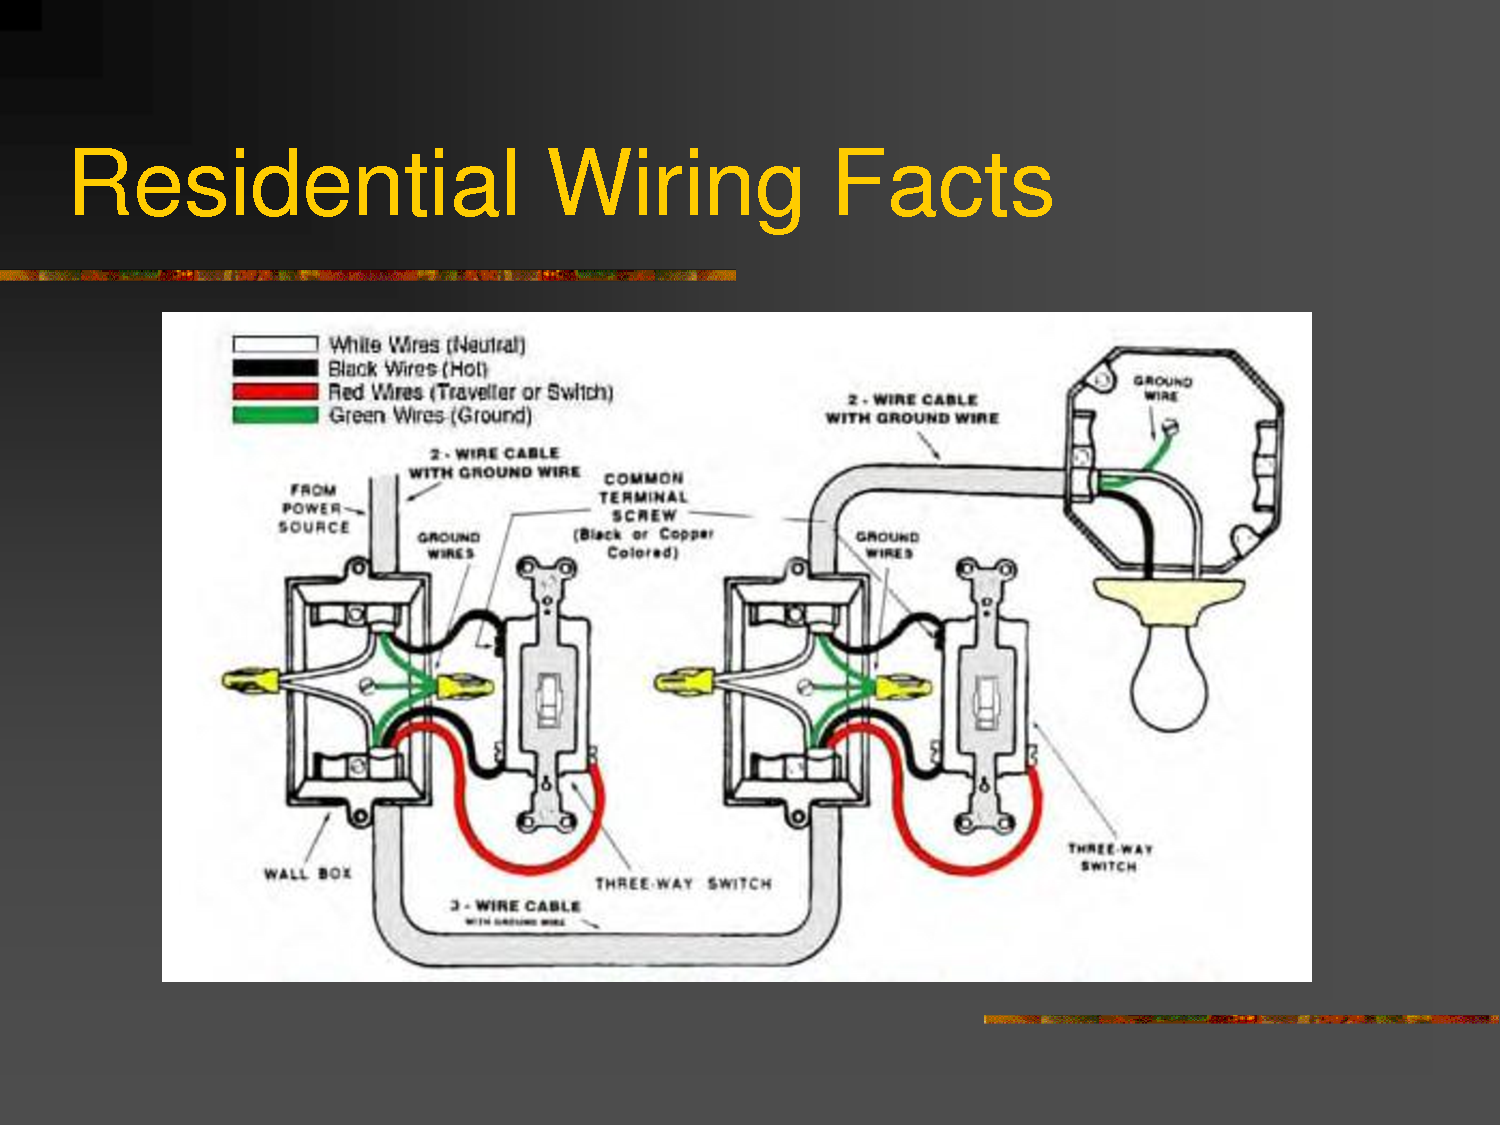 House Wiring Switches | Wiring Diagram on on off on rocker switches diagrams, two-way switch installation, spst switch diagrams, two-way switch with plugin, two-way toggle switch wiring, two-way switch schematic, two-way lighting circuit wiring diagram, two-way switch connection, two-way light switch,